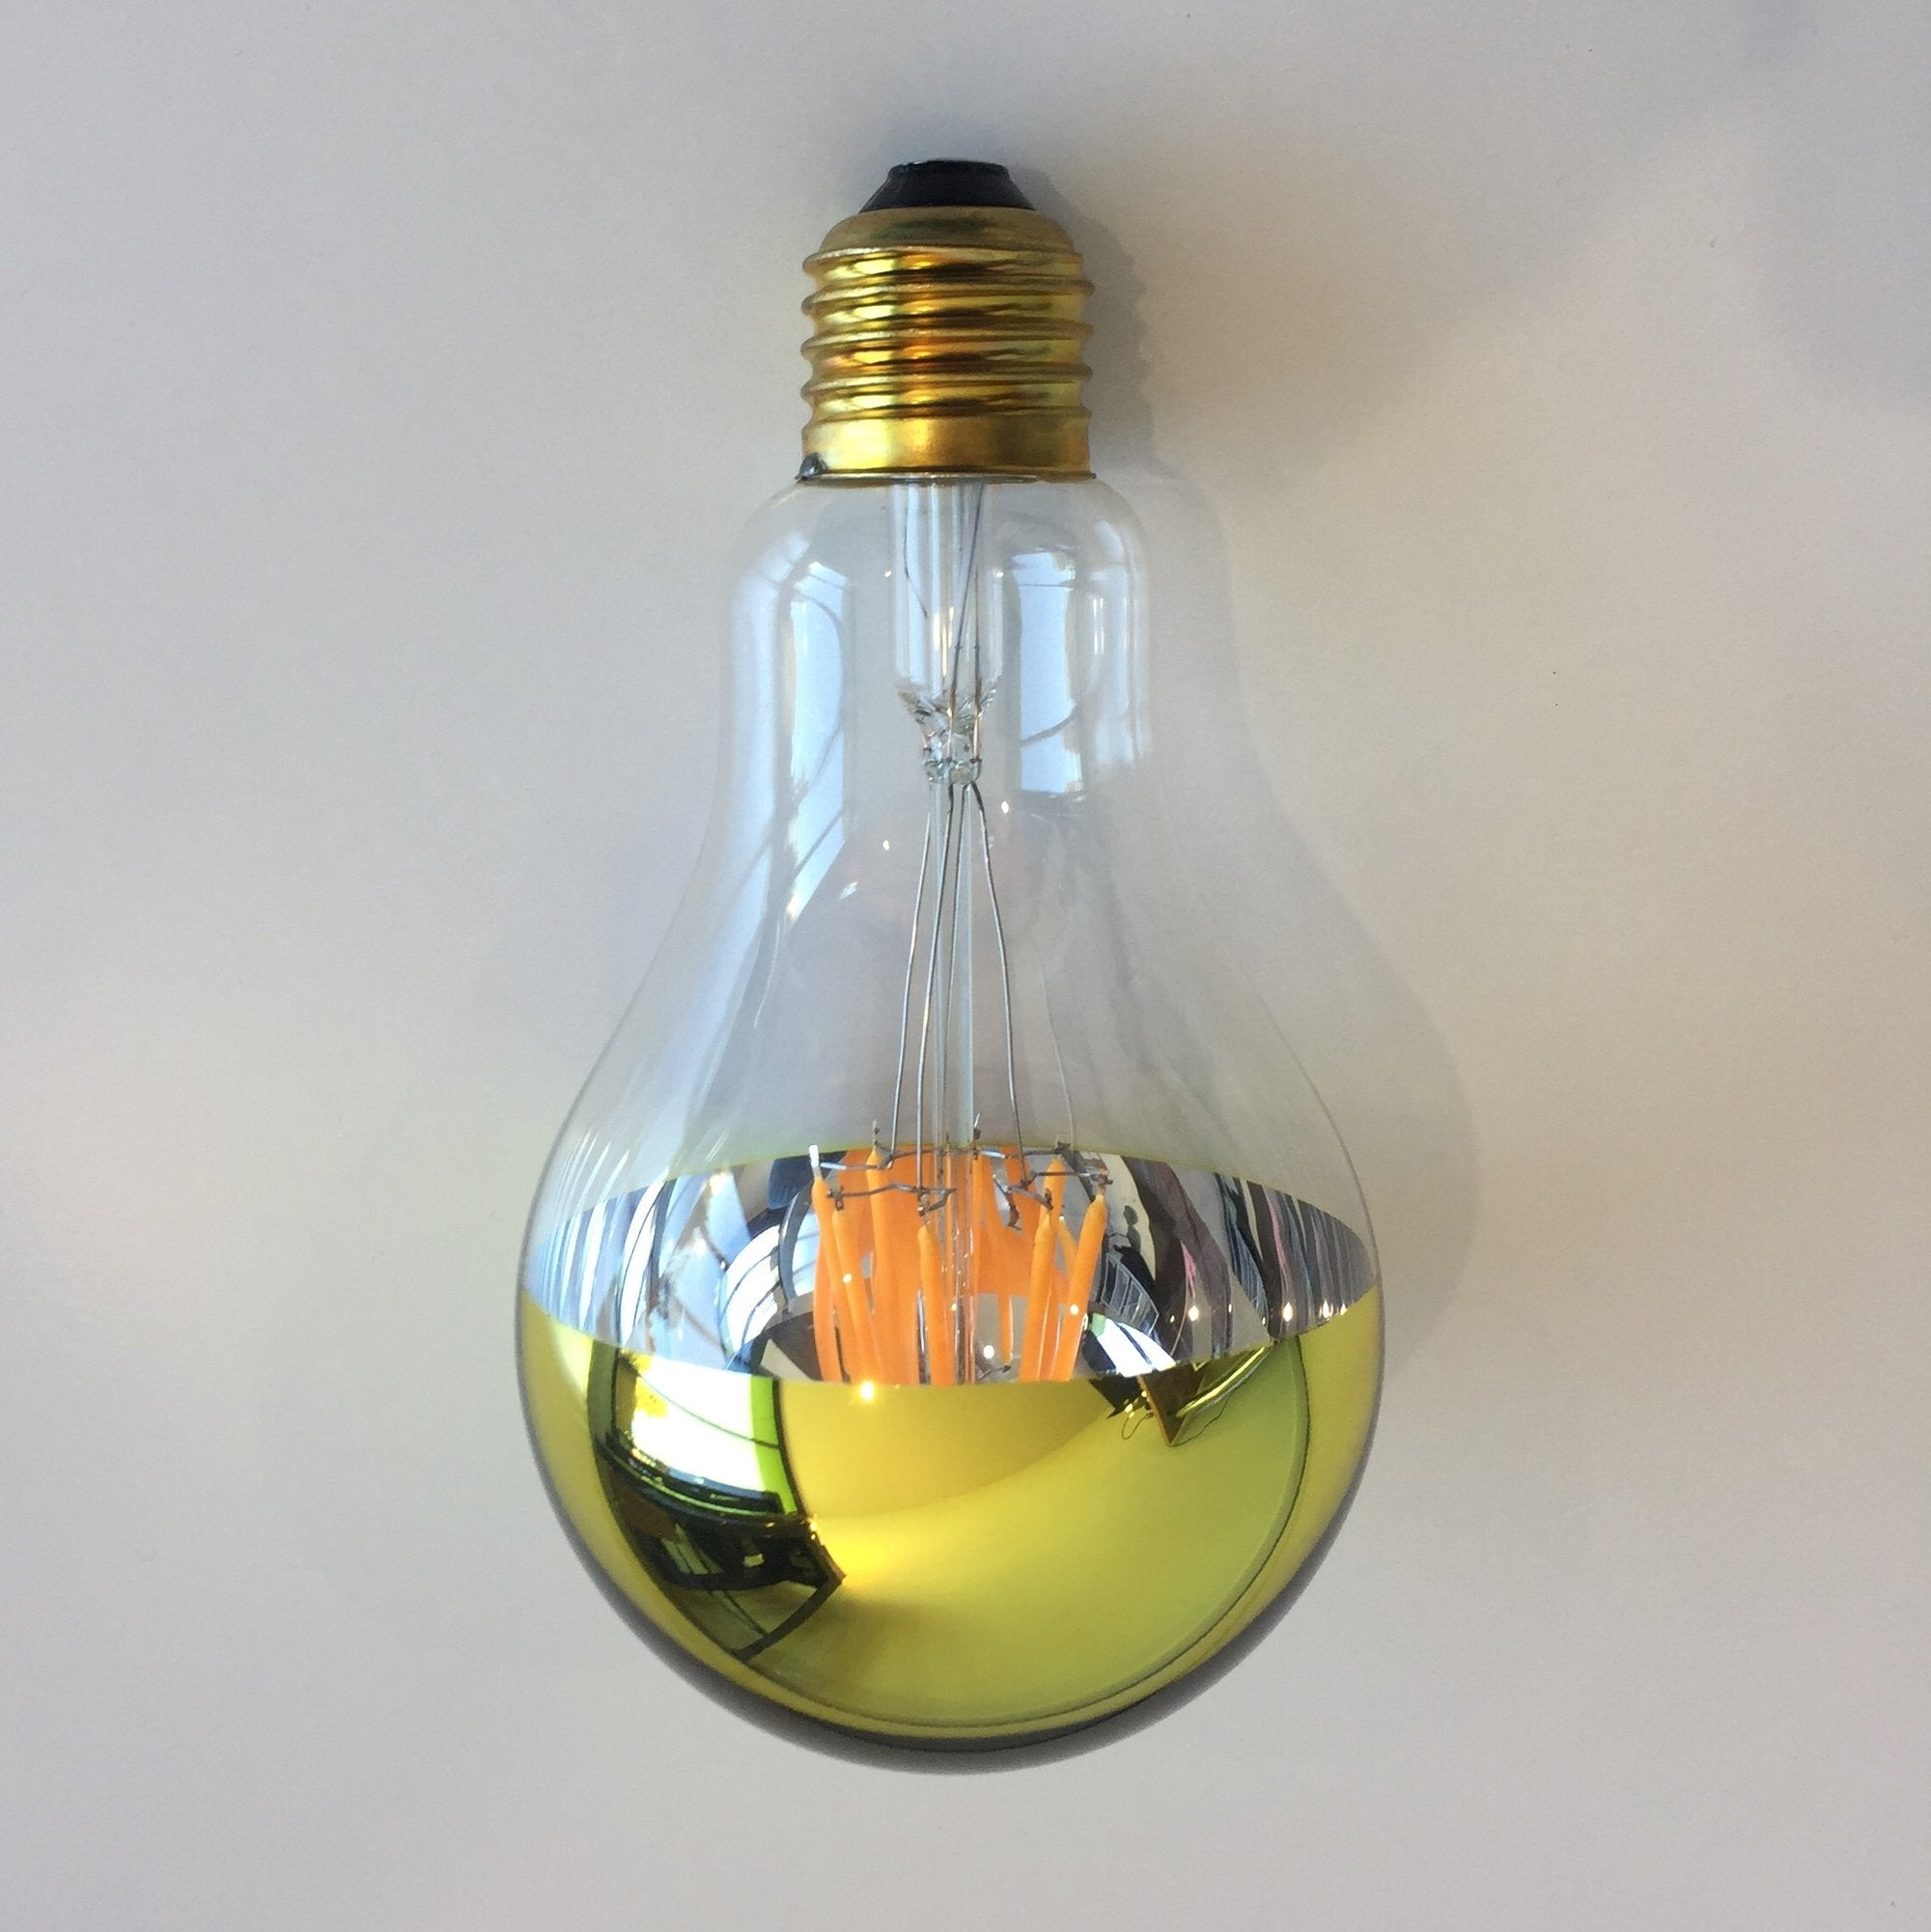 A80 Filament Gold Cap by Vintage LED